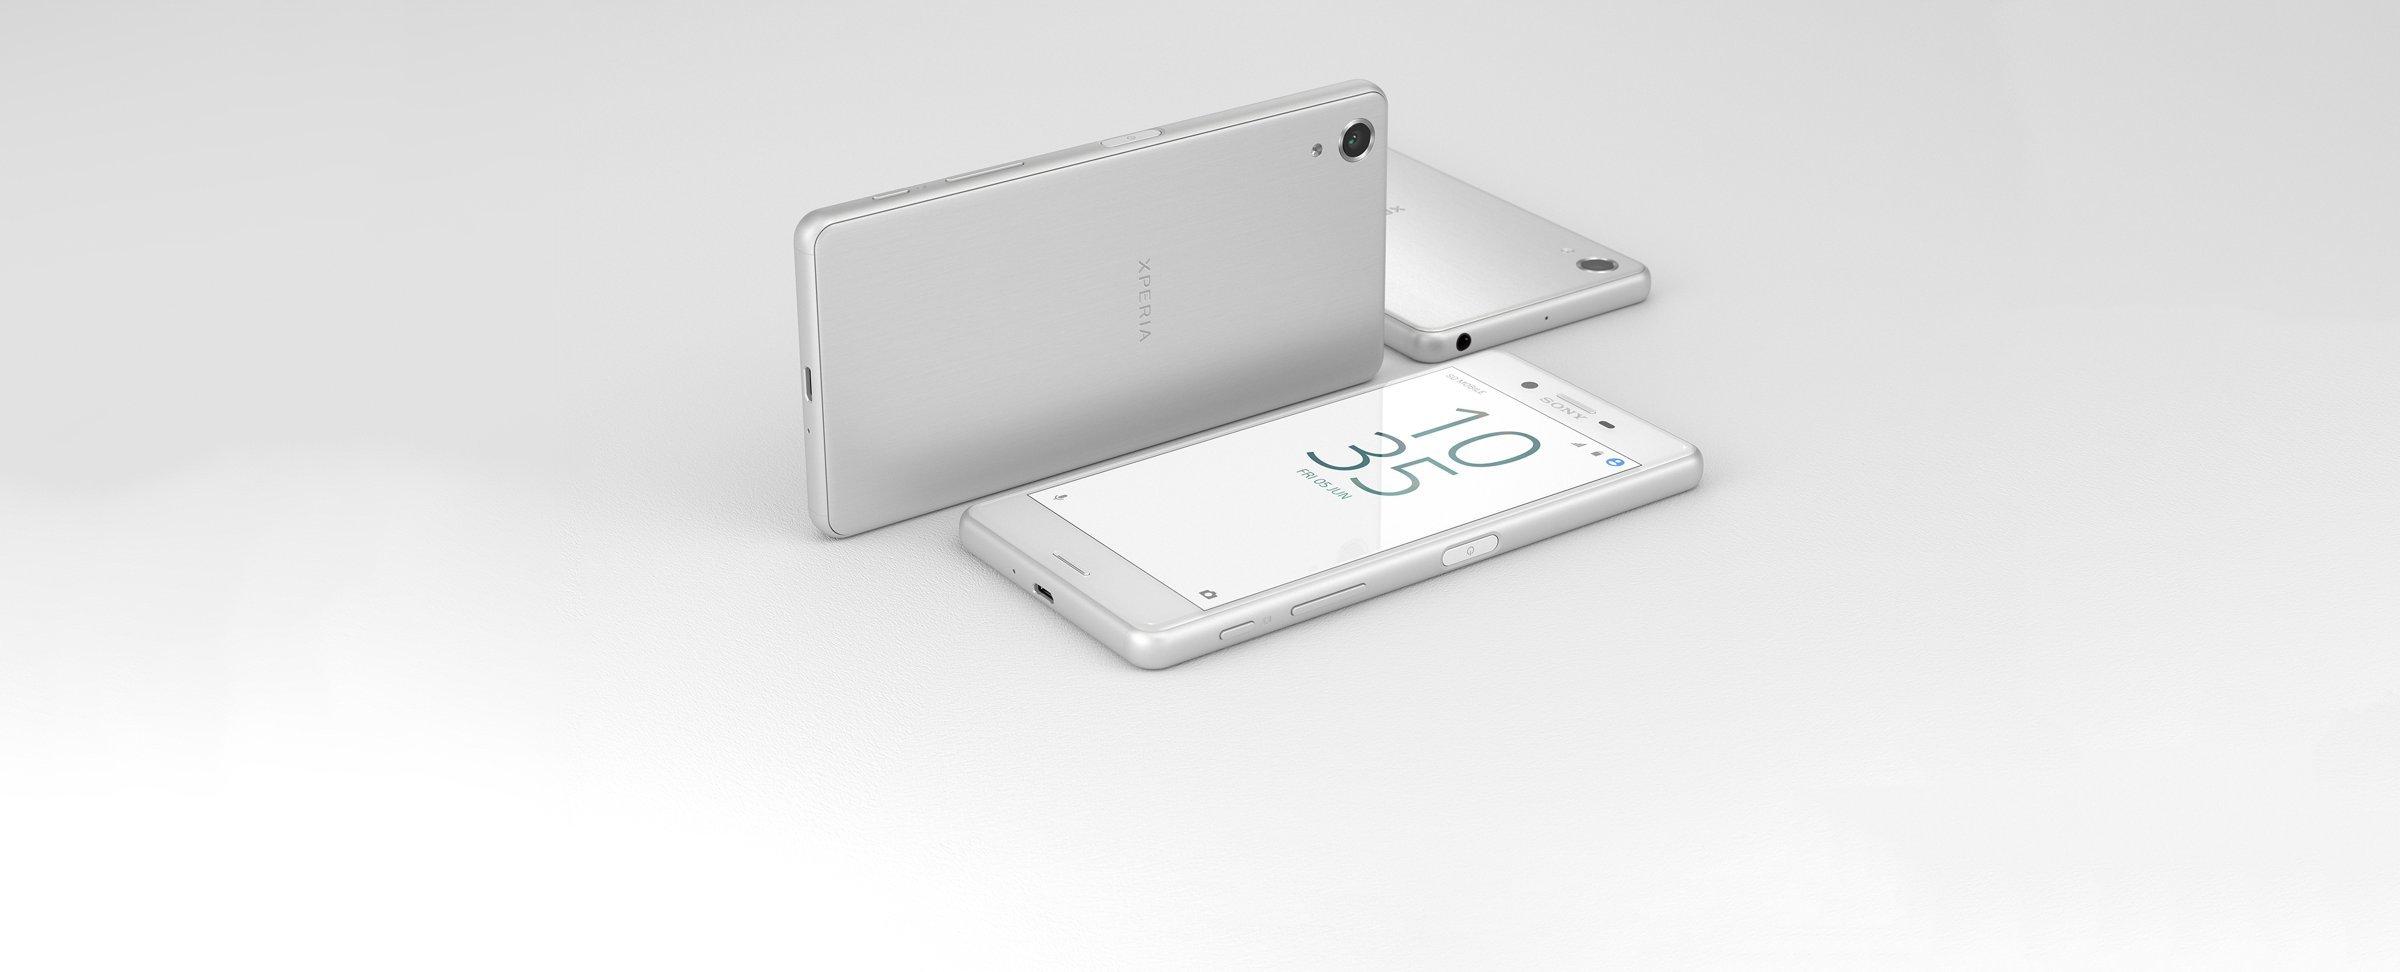 Foto de Sony Xperia X Performance (6/10)